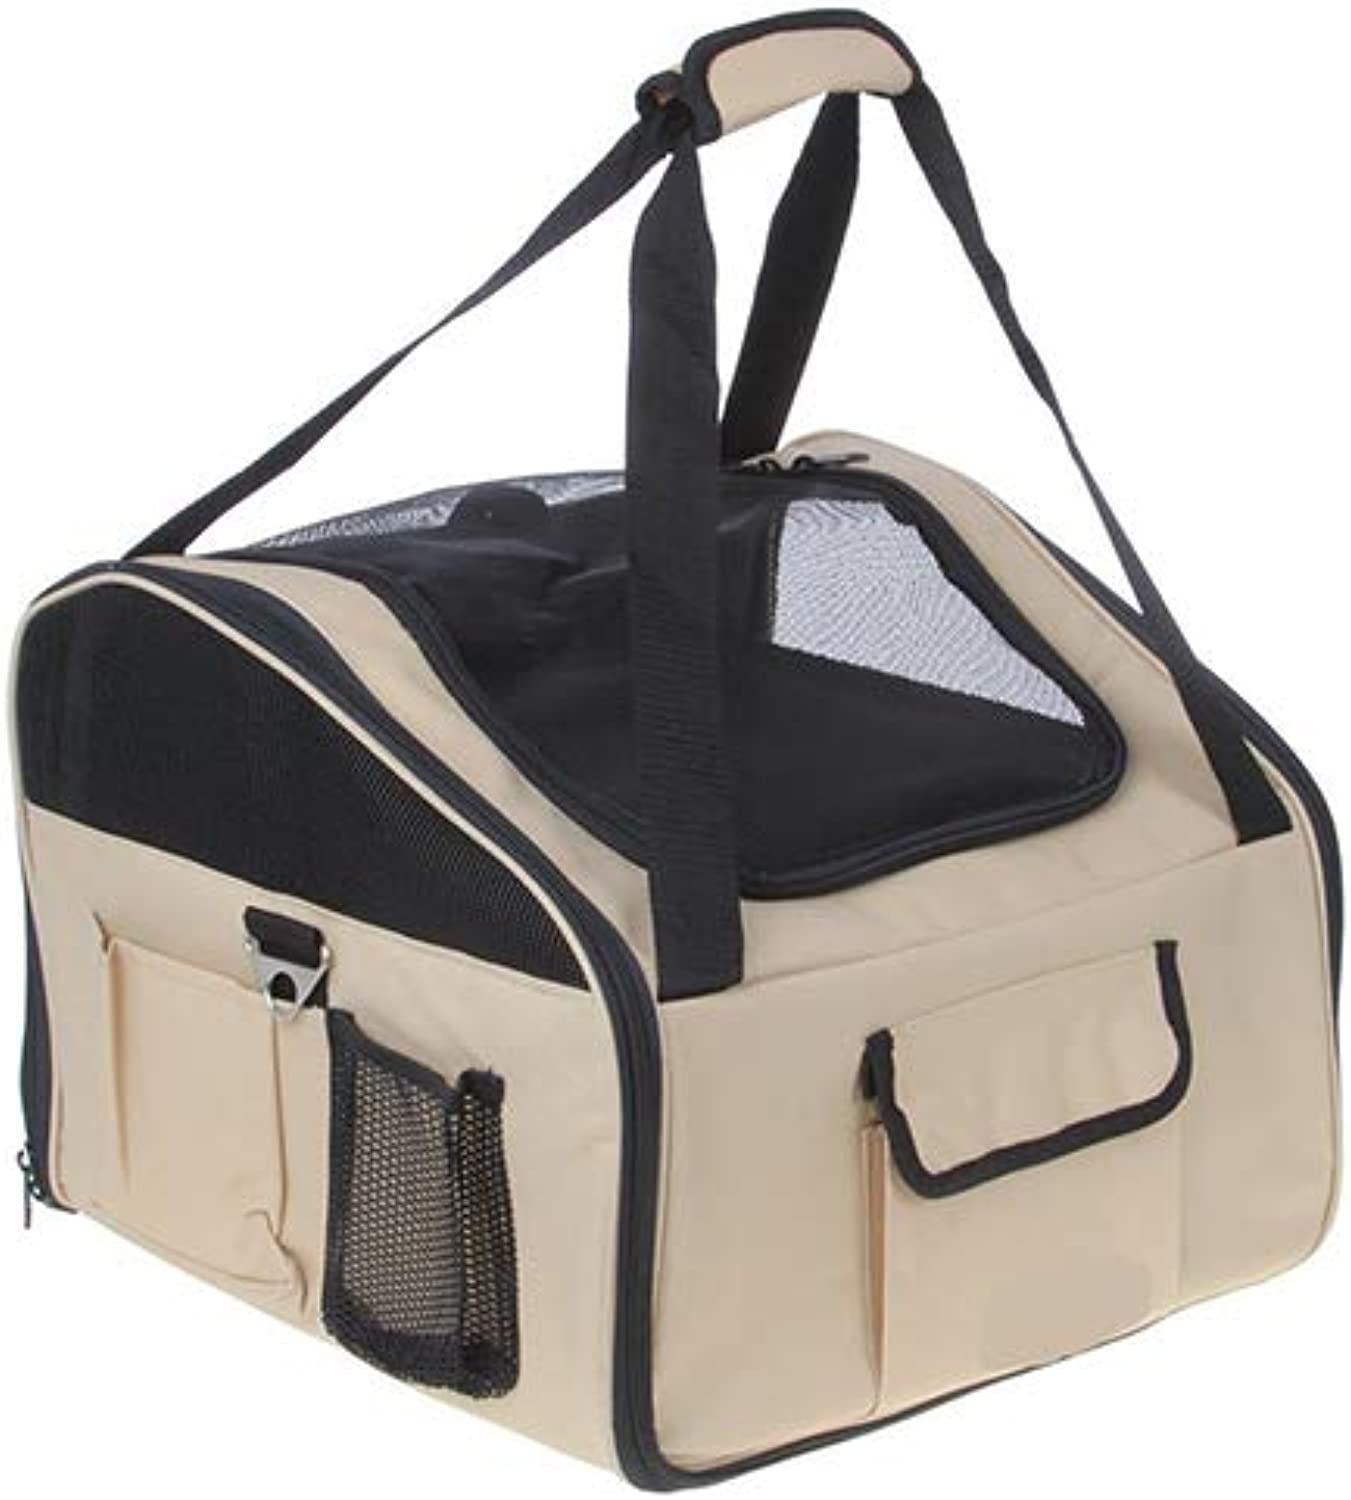 Beige Pet Car Carrying Backpack Lightweight Fabric Pet Carrier Crate Portable Easy Foldable Car Travelbackpack for Dog Cat